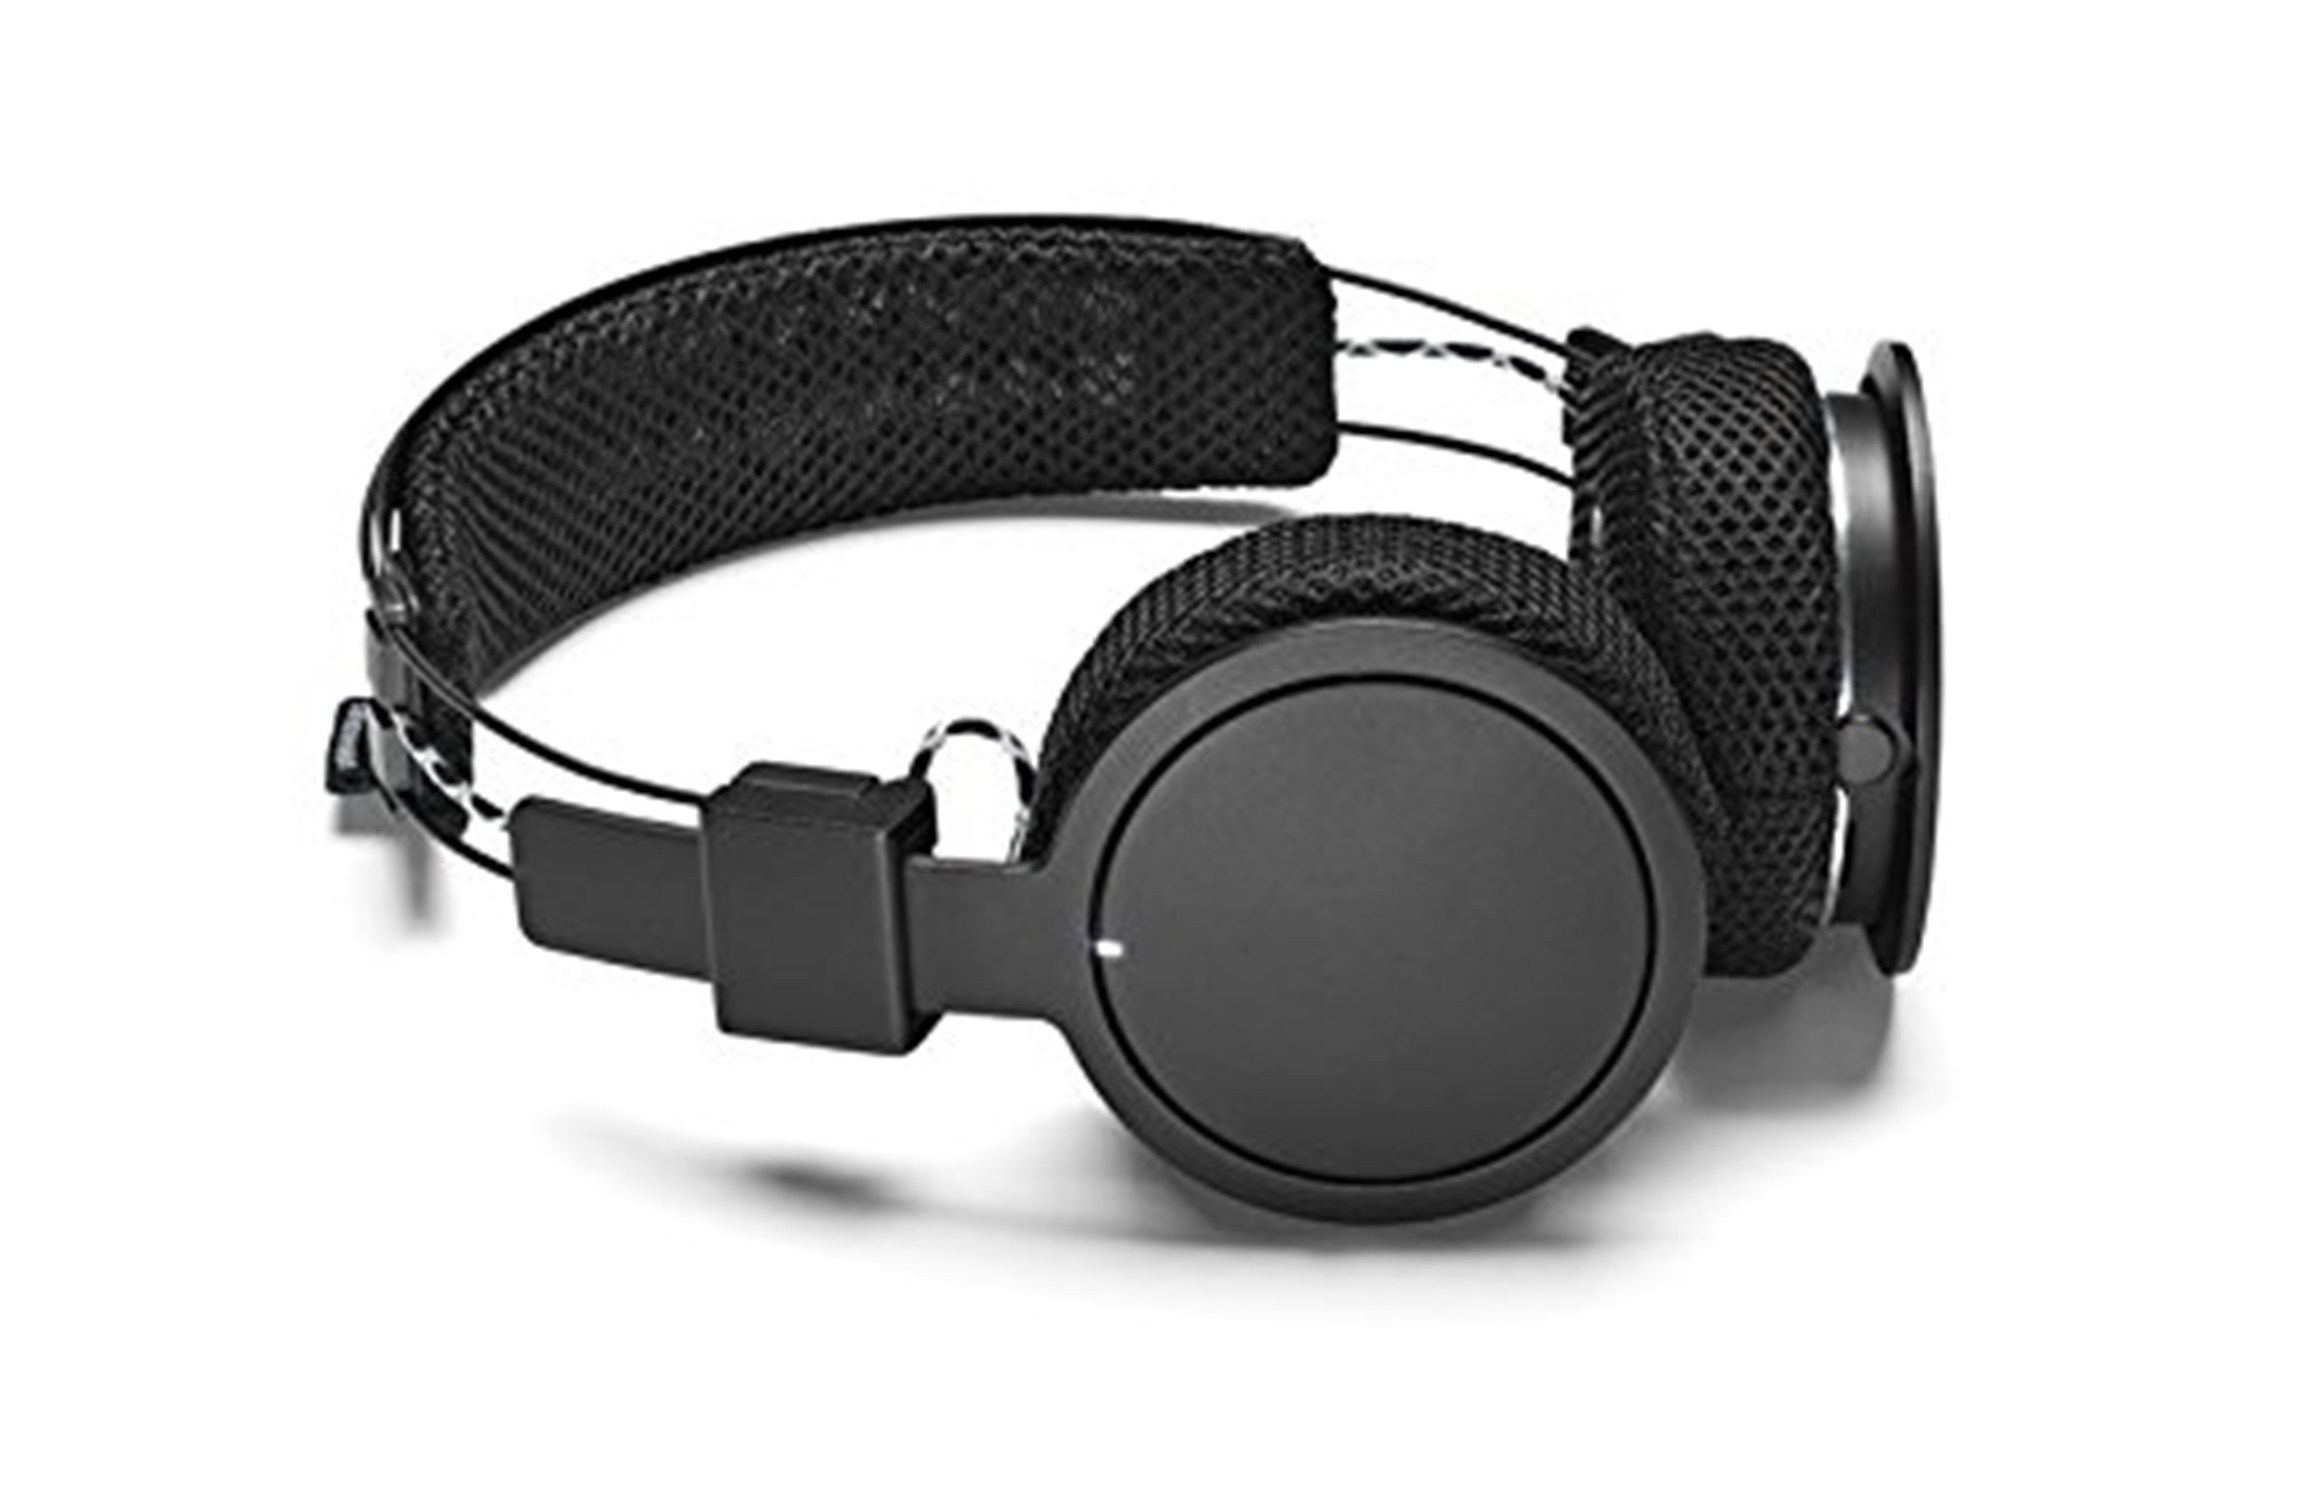 URBANEARS - ACCESSORI AUDIO - 7340055315869